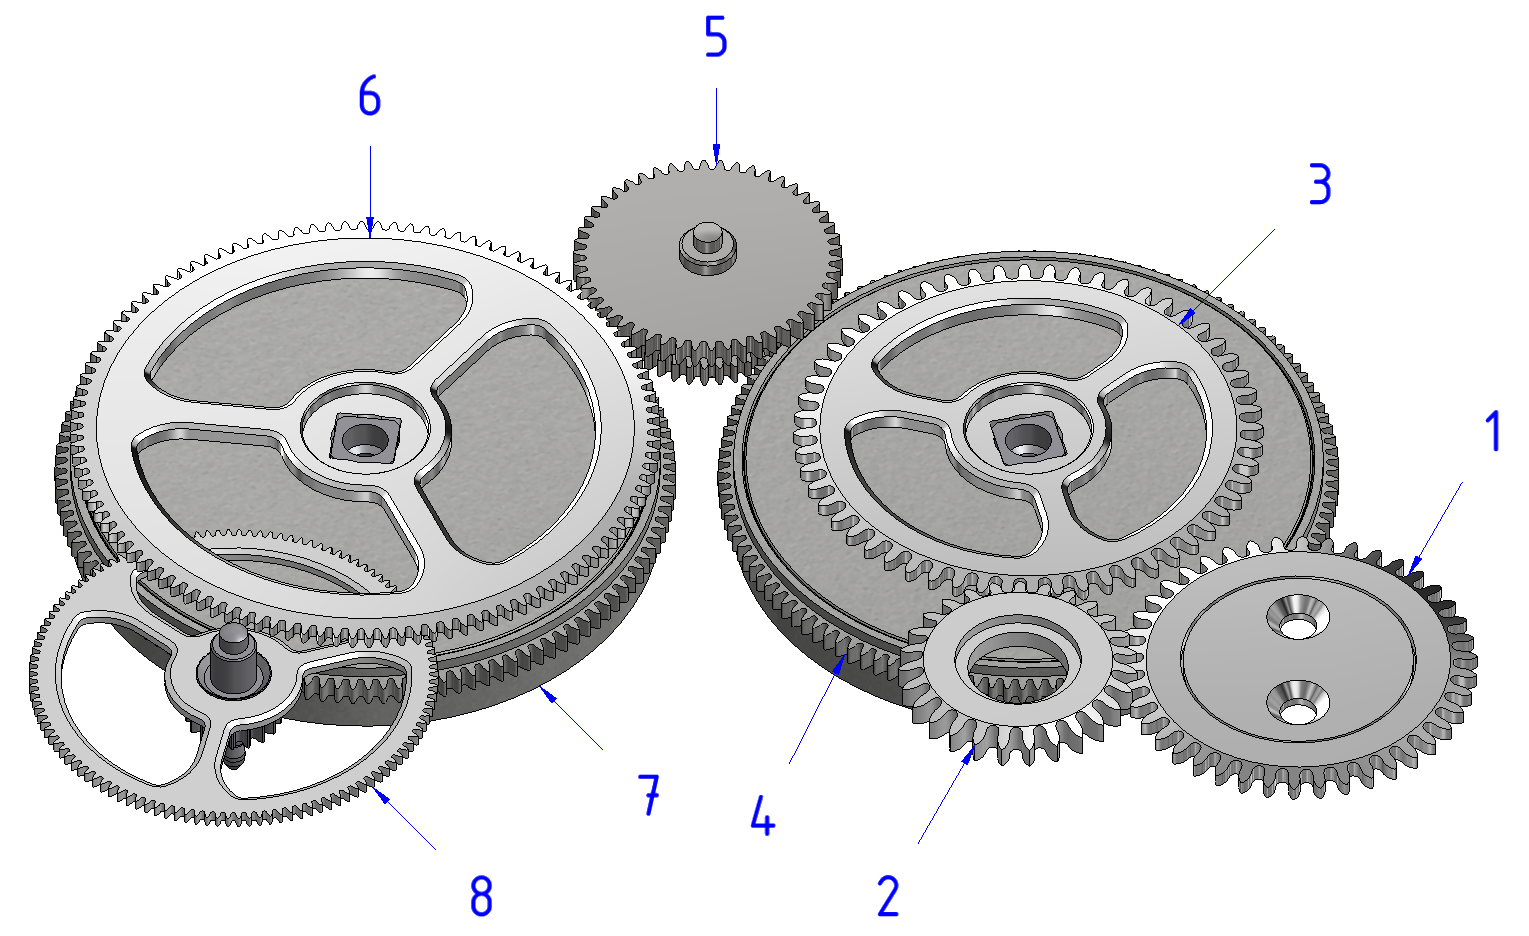 The first barrel (7) is the only one which drives the gear train (8). When its torque falls below a certain percentage of that of the second barrel (4), the latter compensates for the lack of torque of the first barrel (7).During winding, the ratchet (3) is driven by the reversing gear (2) which transmits the rotation of the upper crown wheel (1). The ratchet wheel 3 winds the second barrel (4) and when its torque is sufficient, the latter rotates and drives the intermediate wheel (5). This wheel (5) rotates the ratchet (6) and thus makes it possible to wind the two barrels (7 and 4) until they are fully wound.